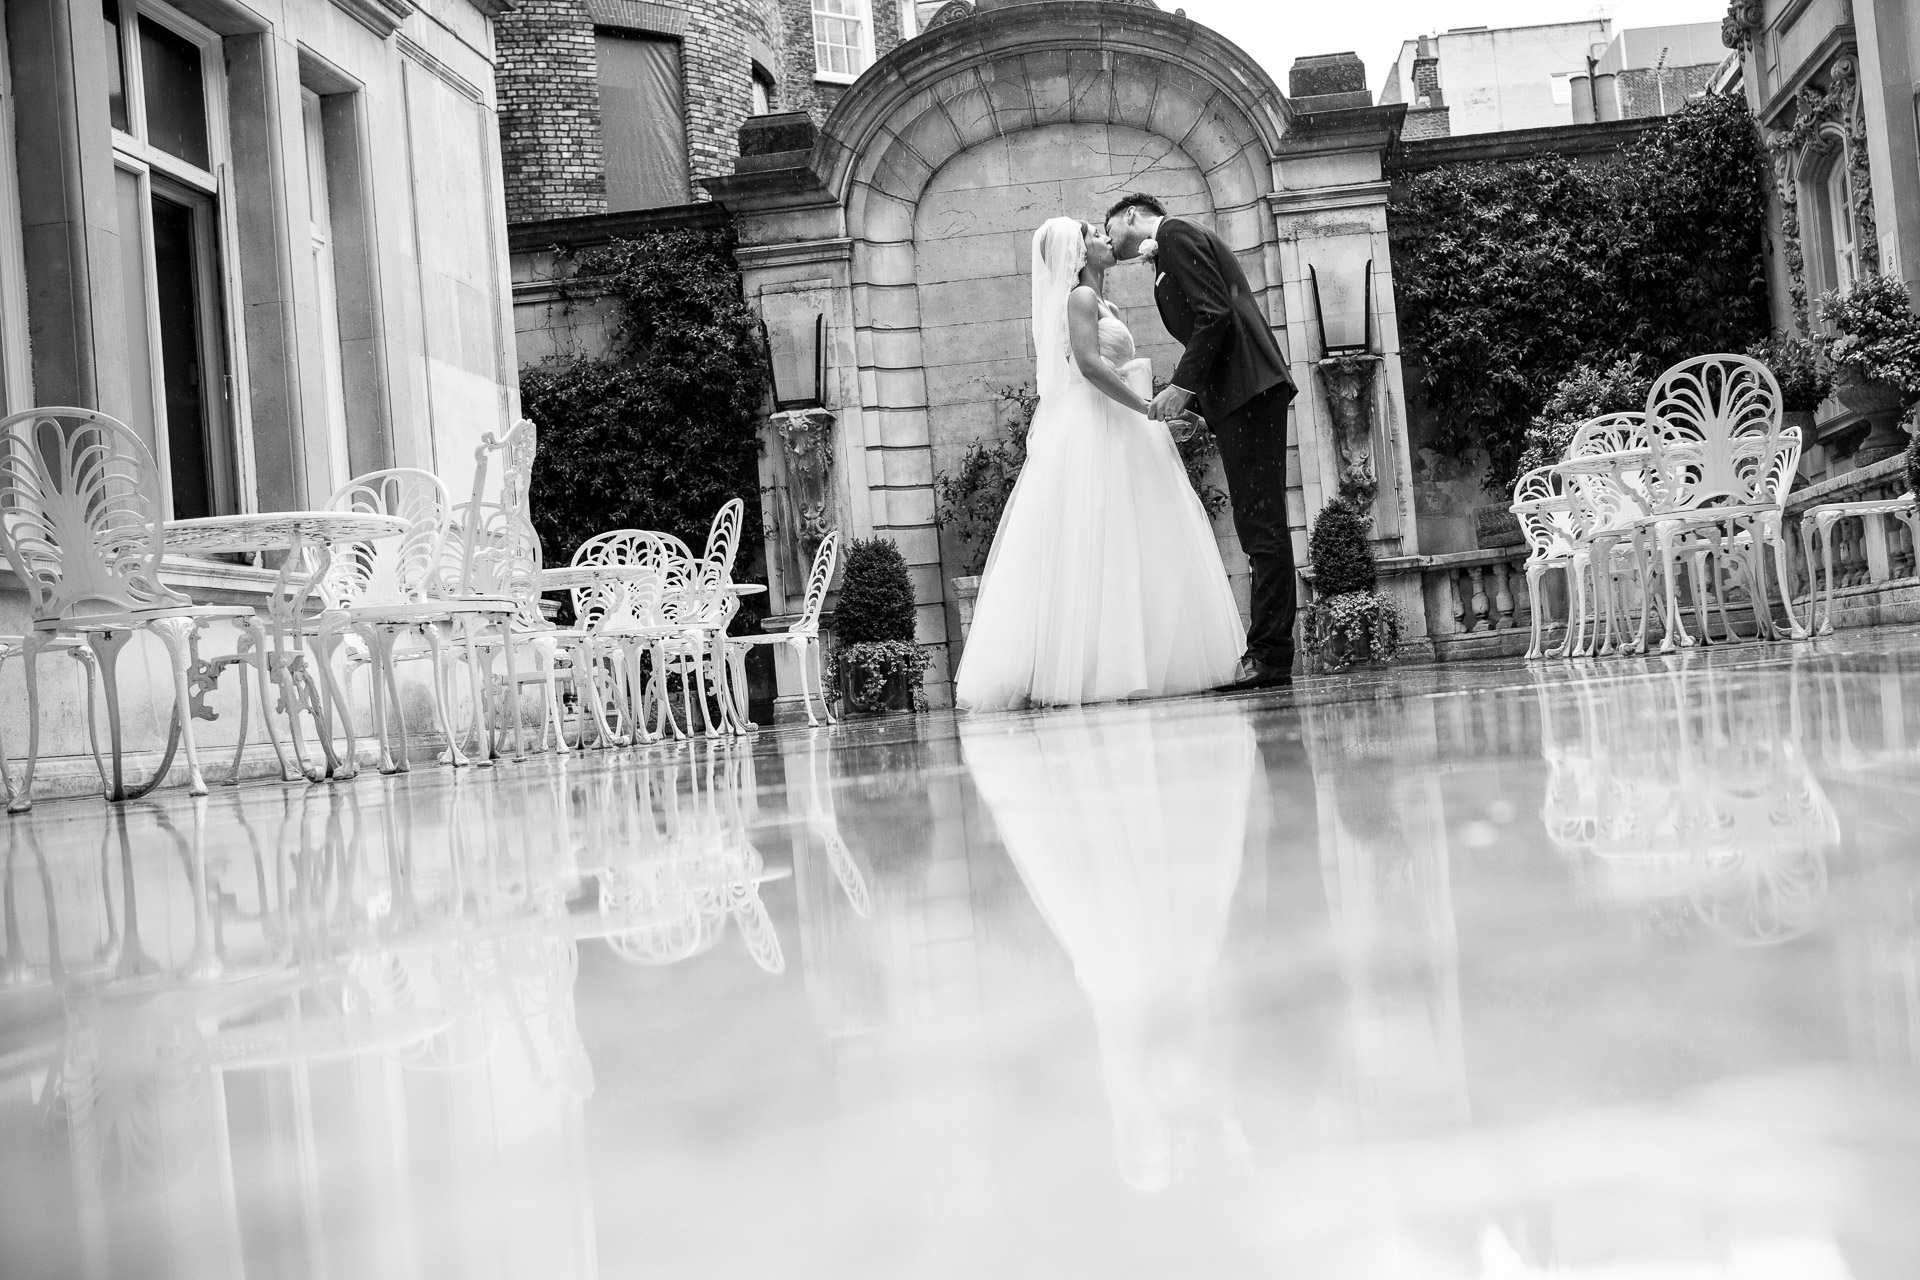 Sophie & James - Belgravia Wedding